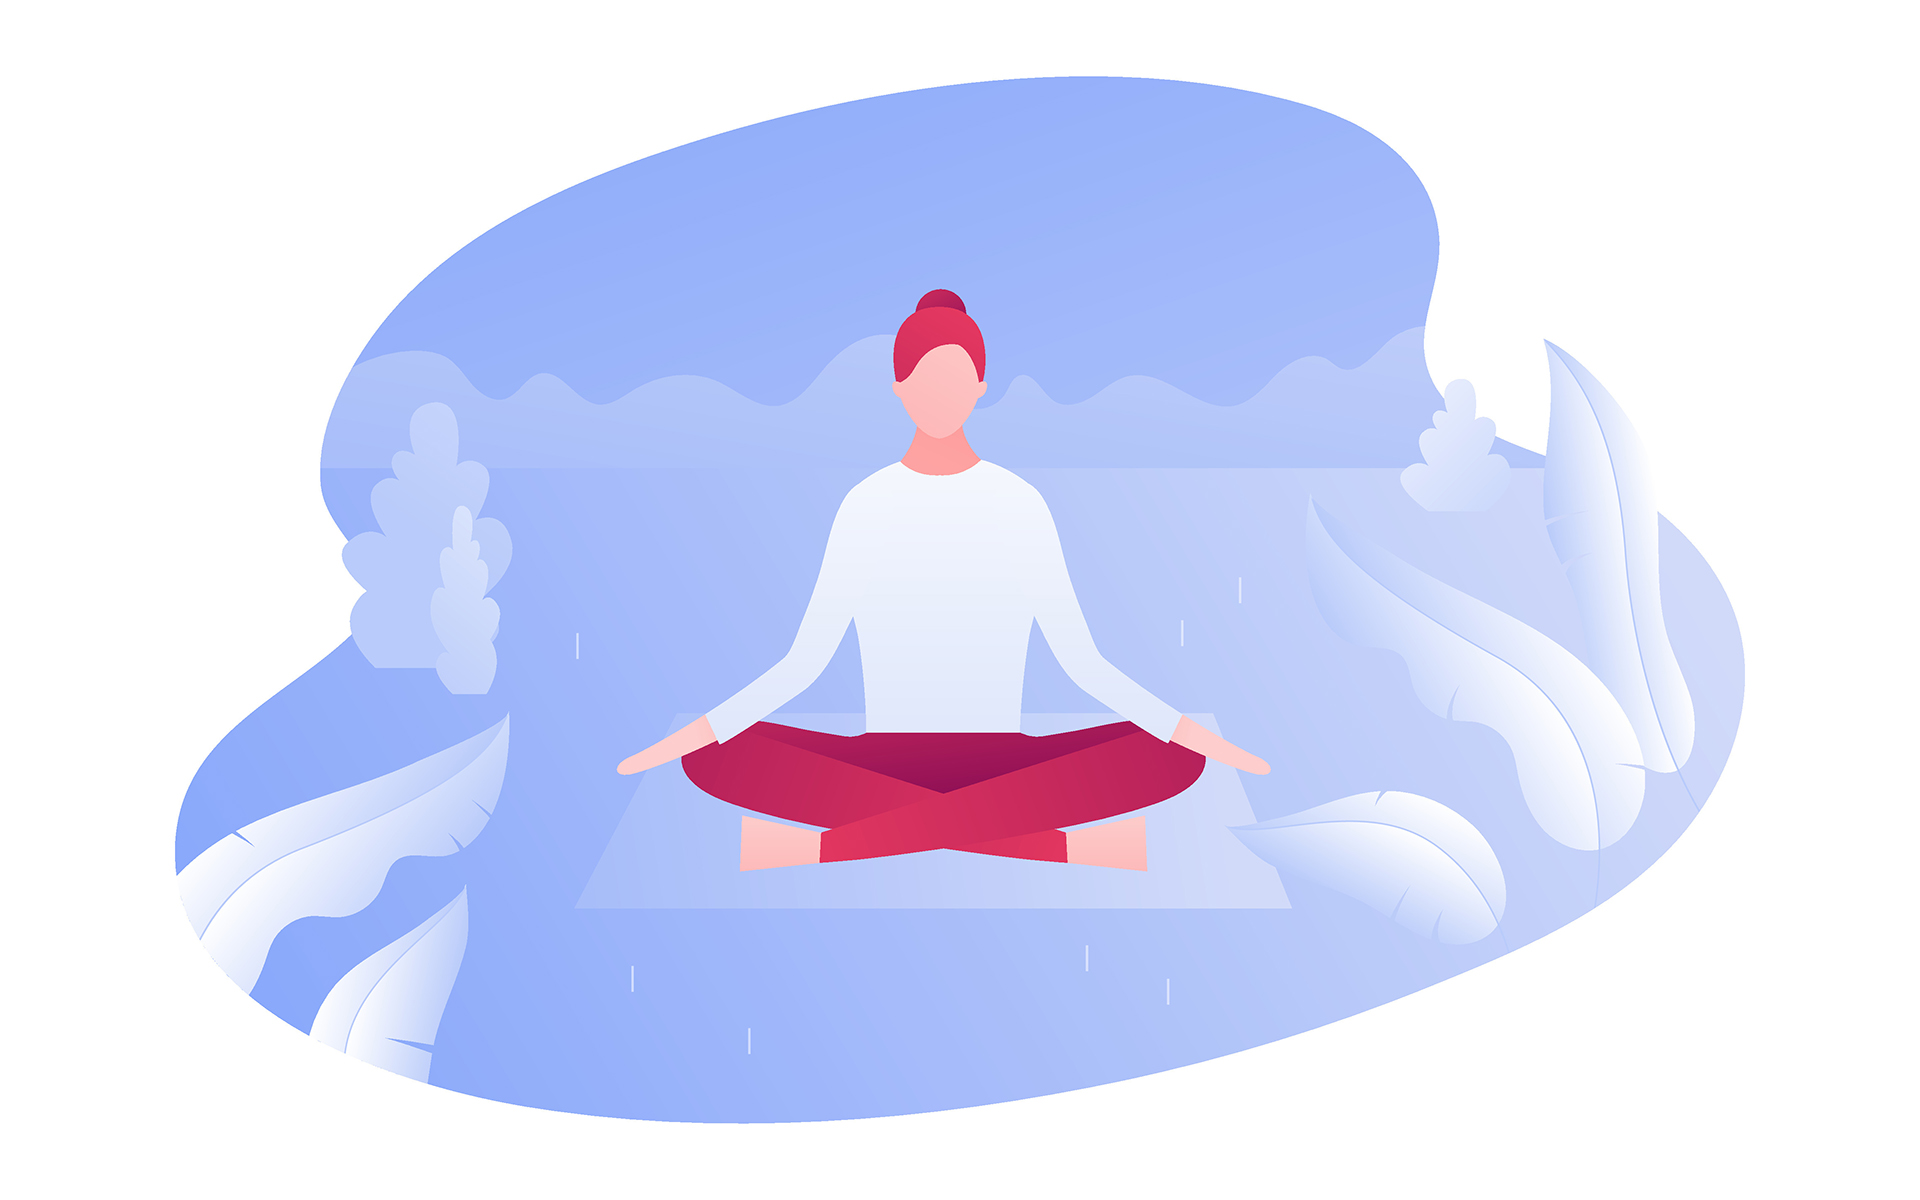 Cultivating strength and stability - illustration of a women seated in meditation